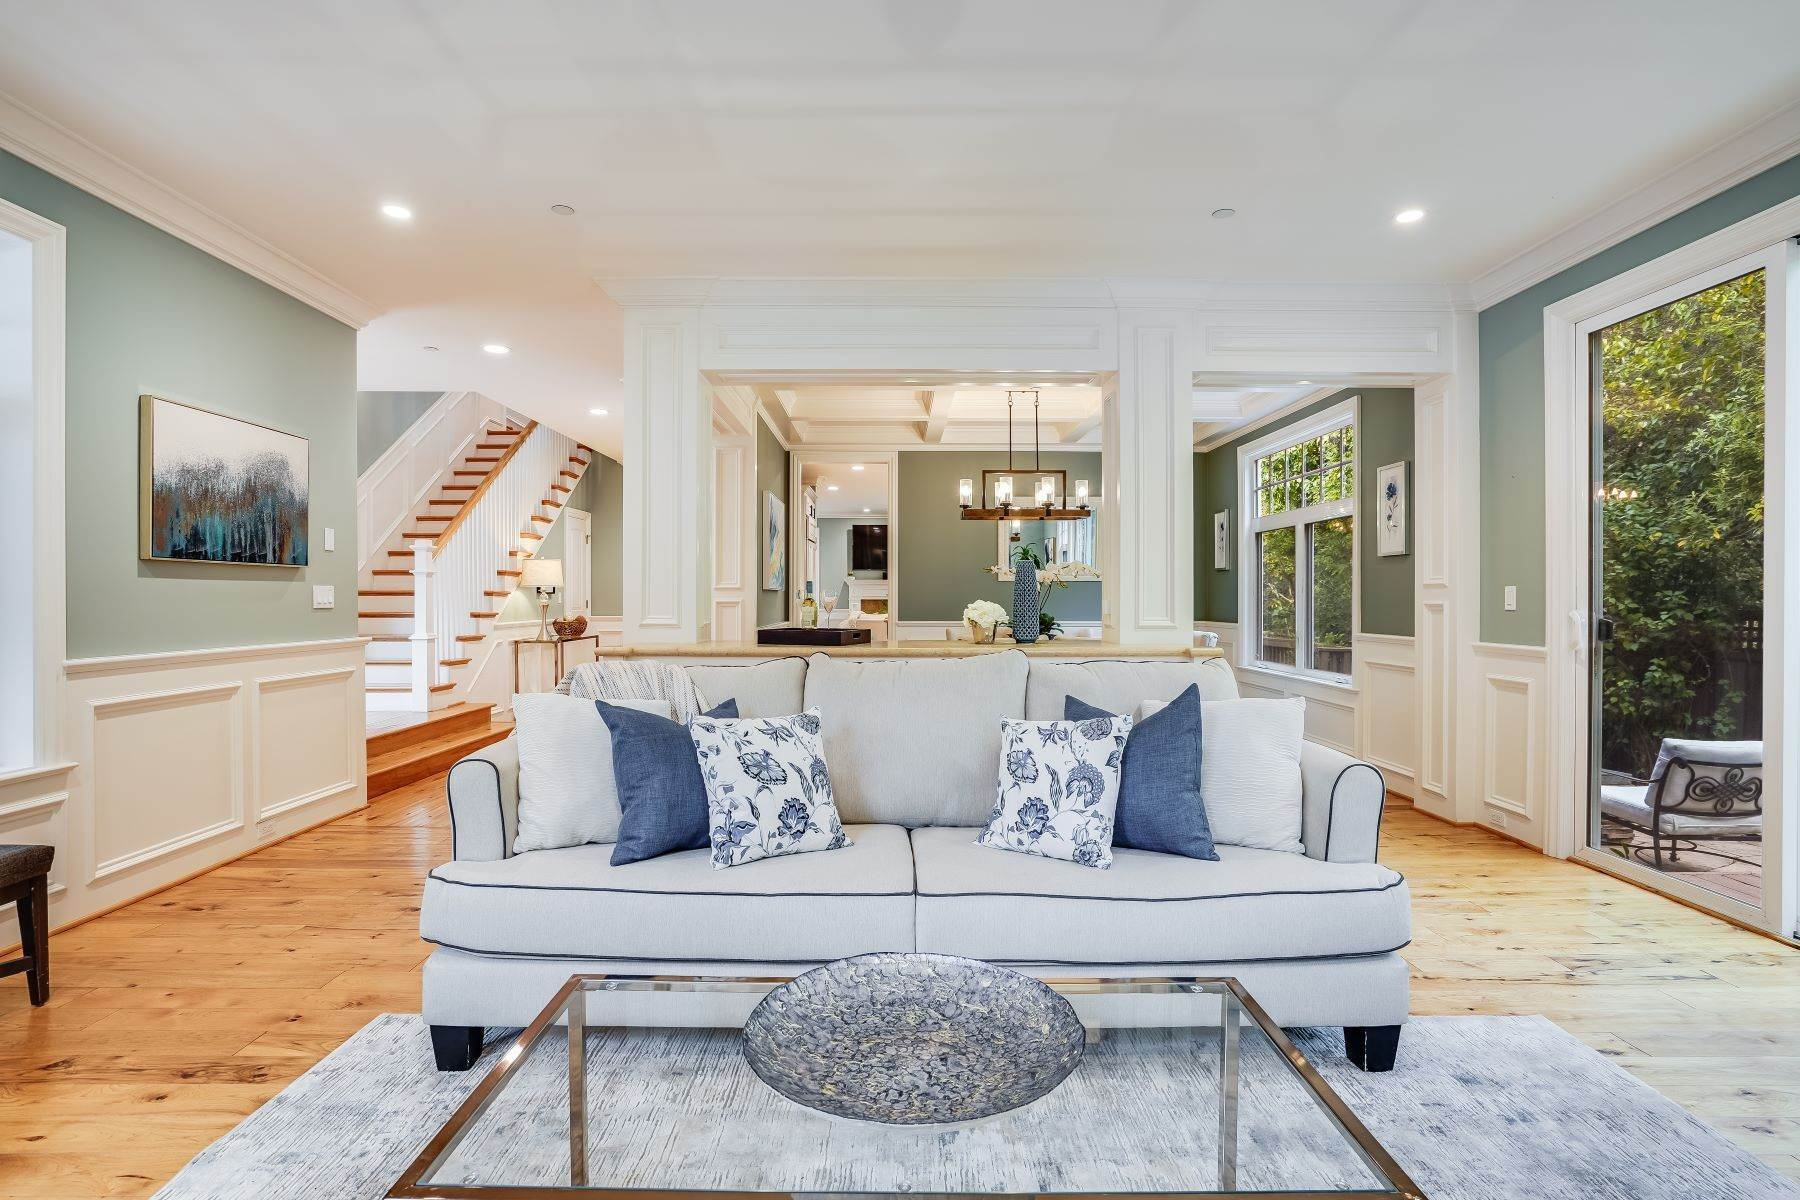 11. Single Family Homes for Sale at Exquisite Home in Excellent San Carlos Location 38 Pine Avenue San Carlos, California 94070 United States